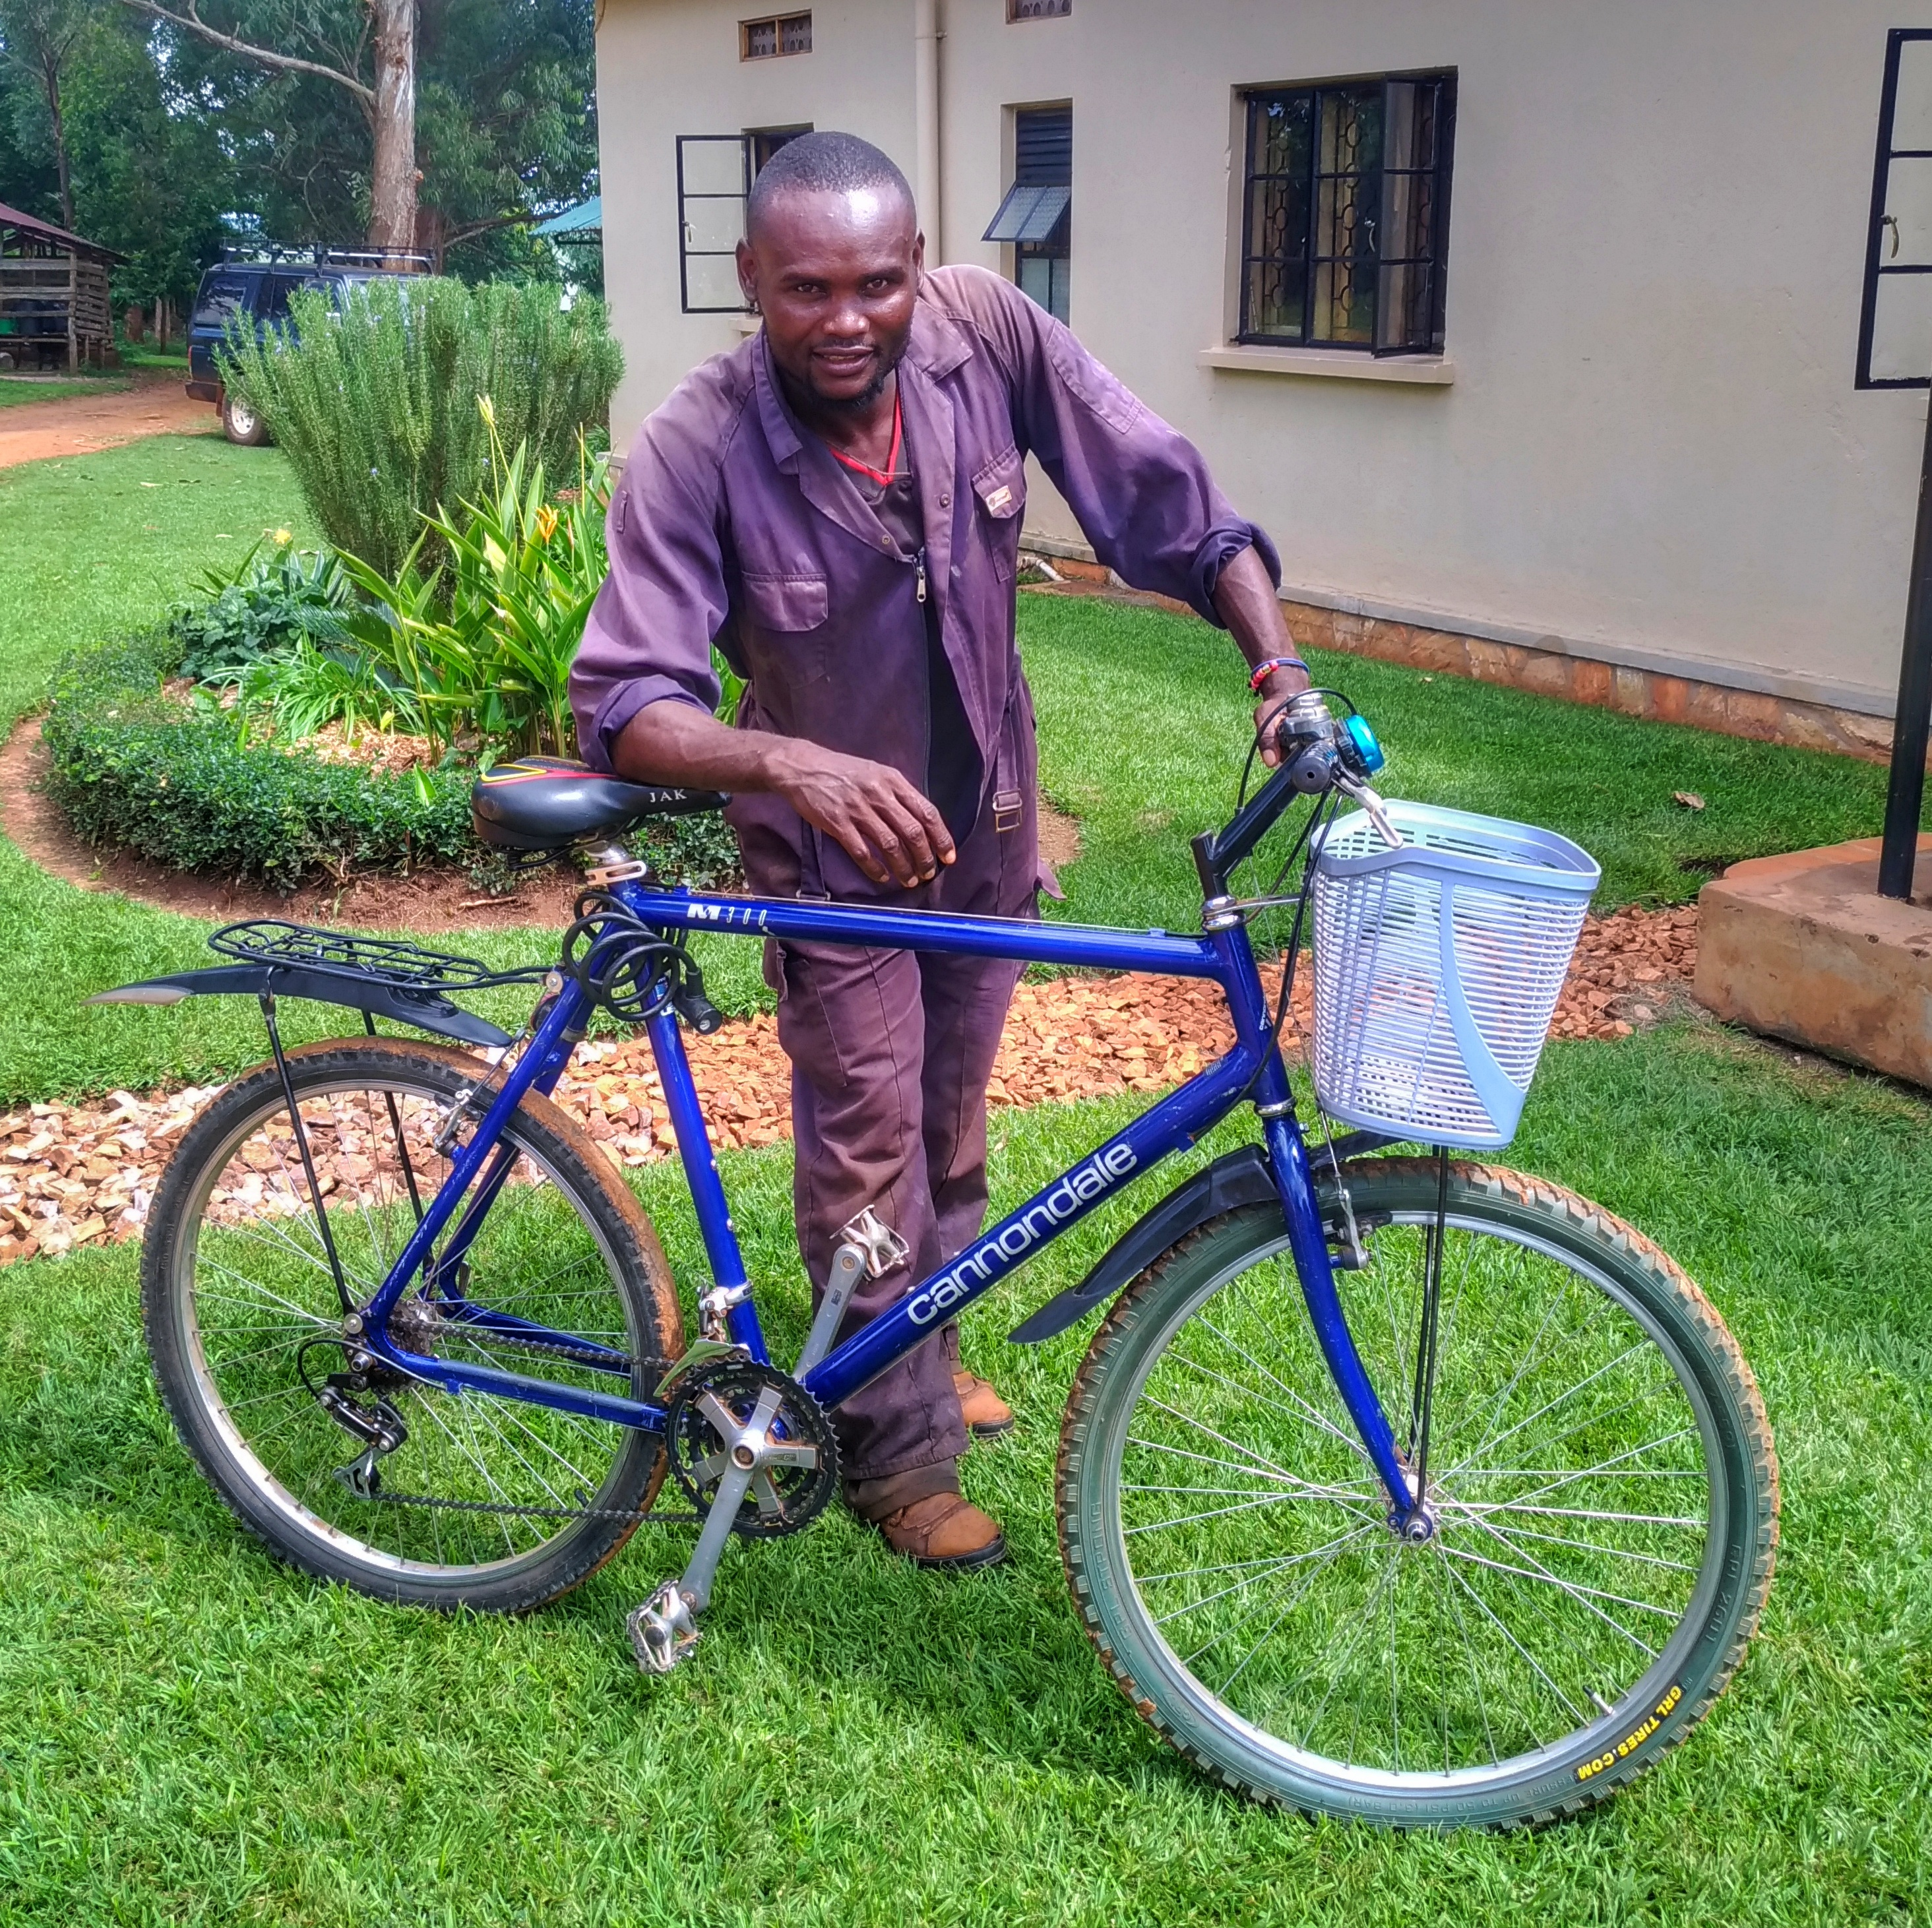 Ali and the bike he uses to visit audio Bible listening groups